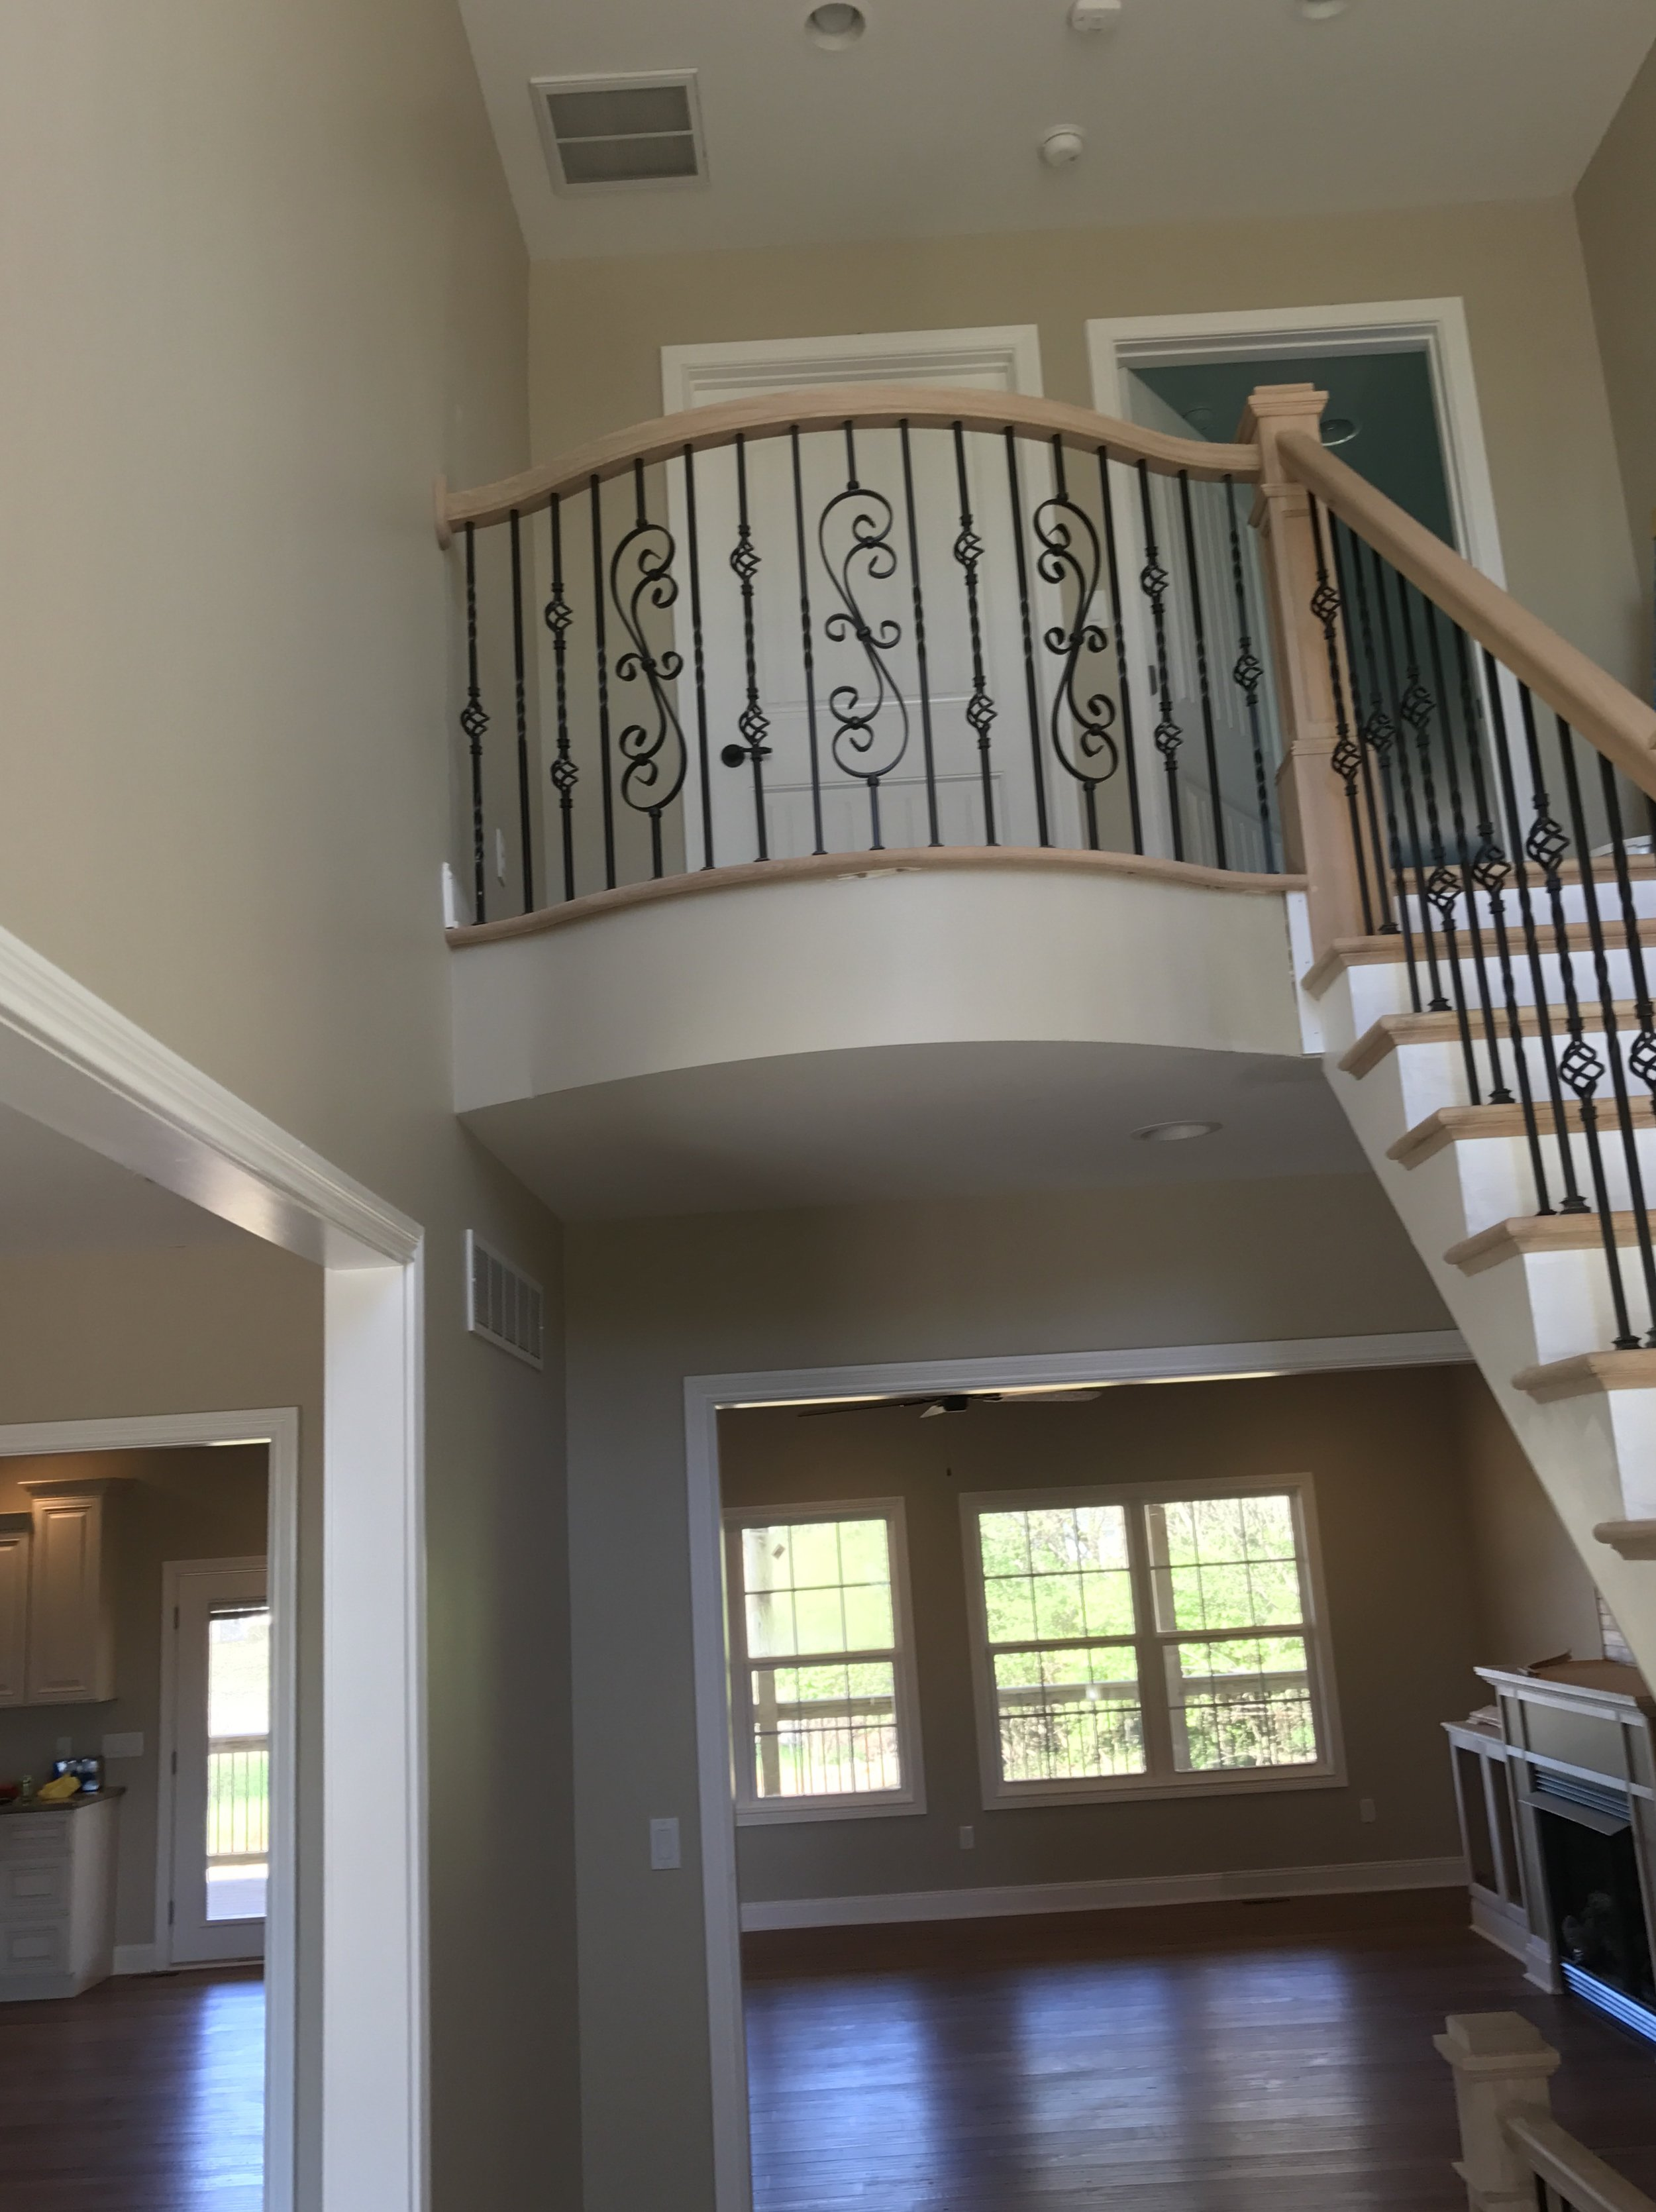 This beautiful ornate staircase leads to 2 very large bedrooms both complete with an ensuite bath and large walk in closets.